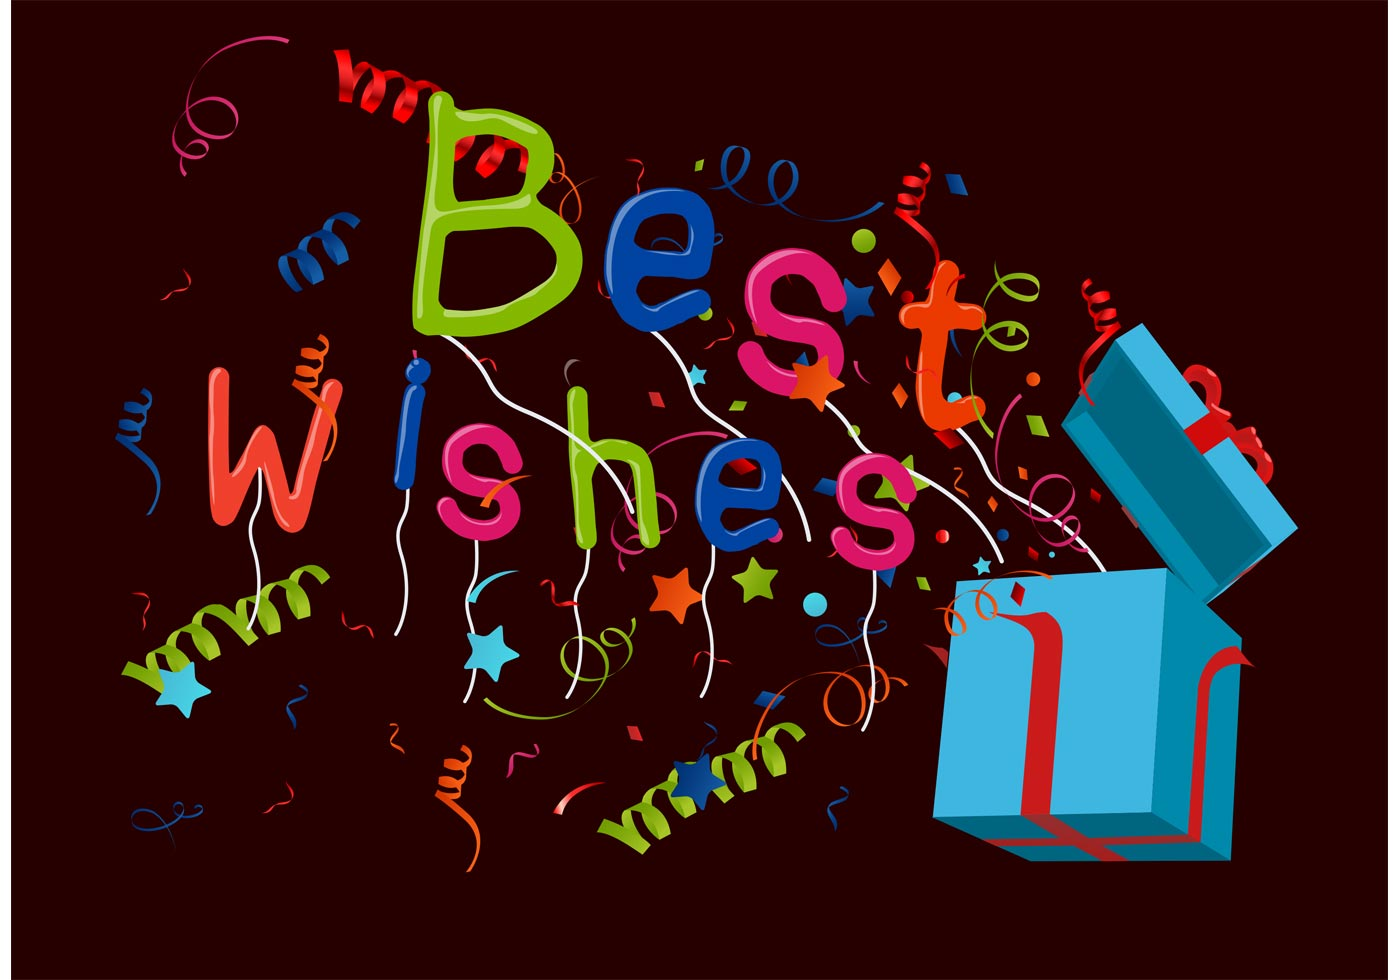 Best Wishes Vector Background